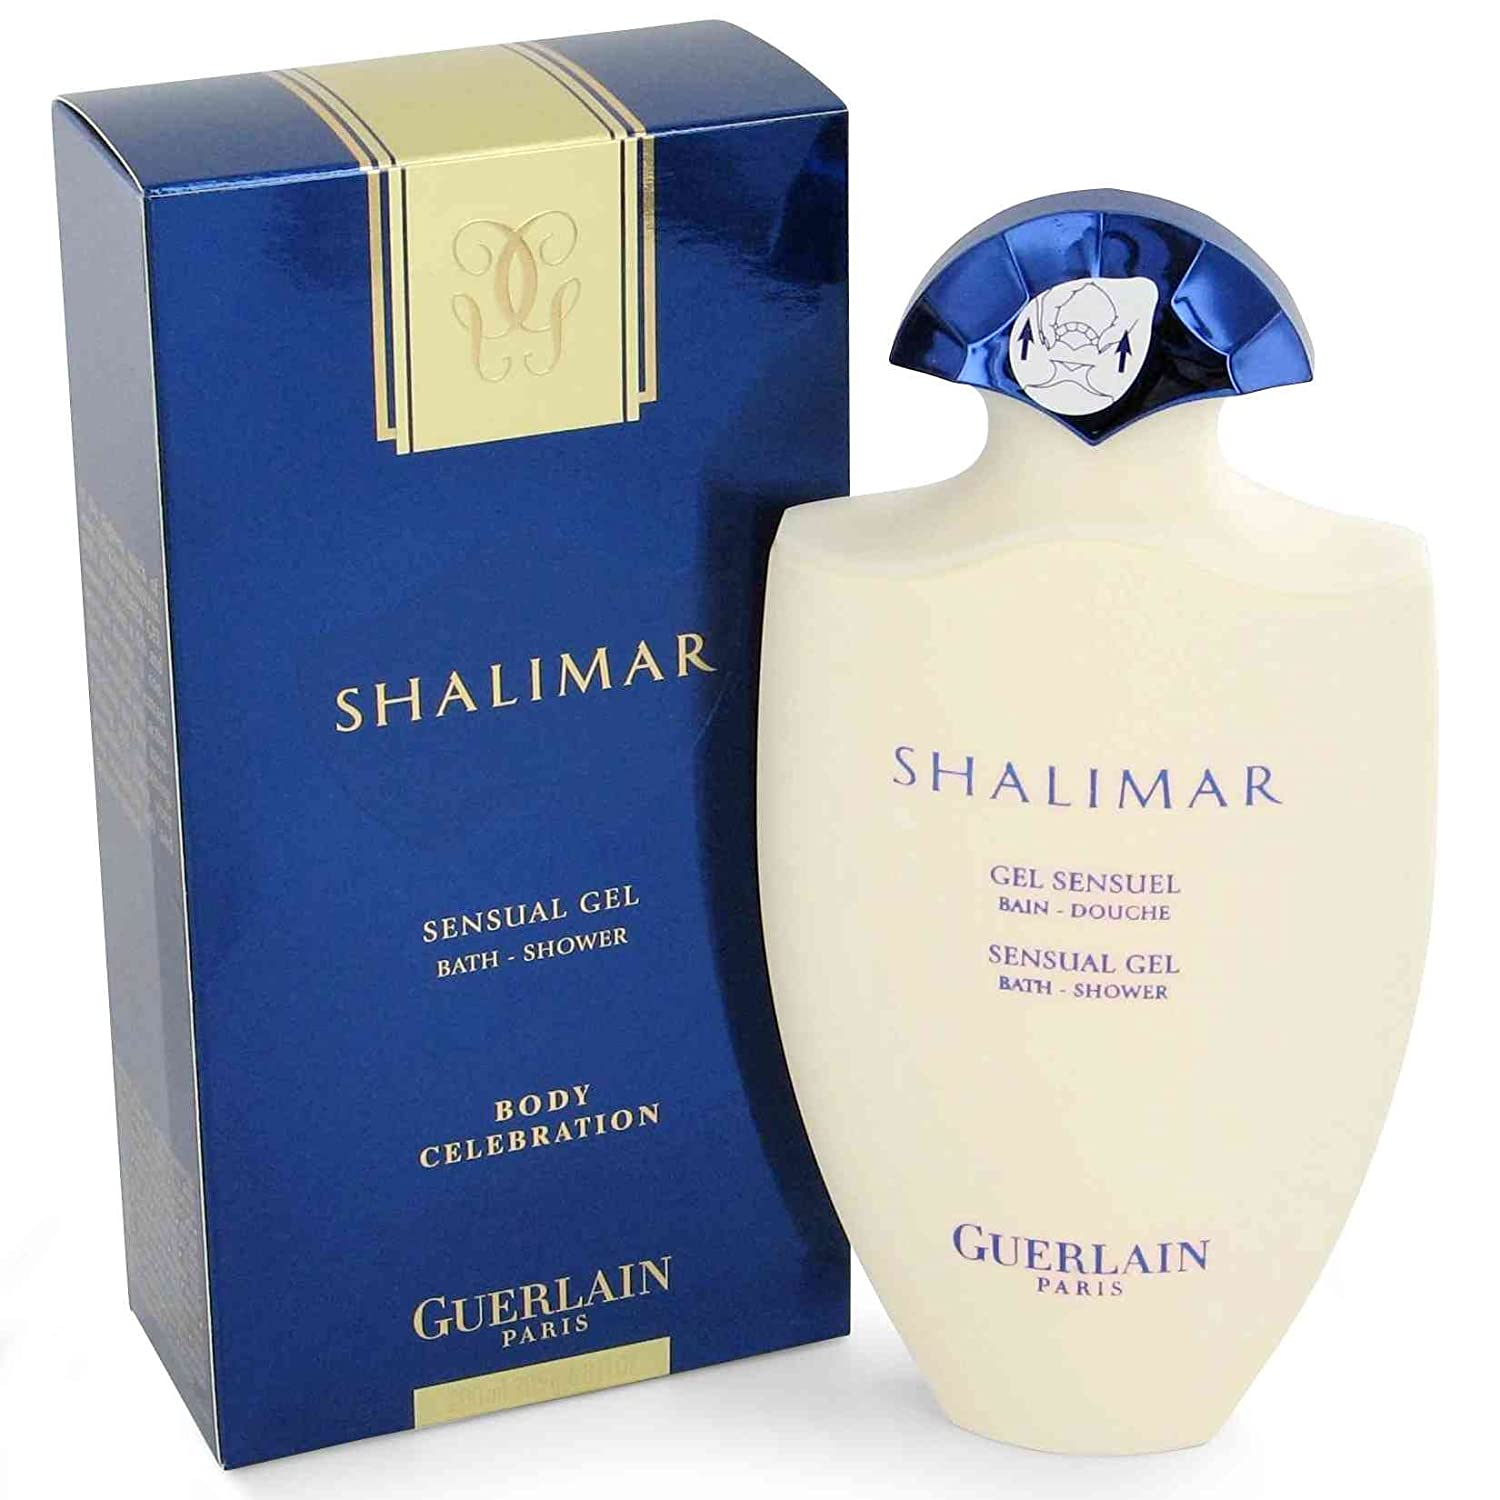 B000ETL510 dealz4real SHALIMAR by Guerlain - Shower Gel 6.8 oz 71E9Gvs8FFL._SL1500_